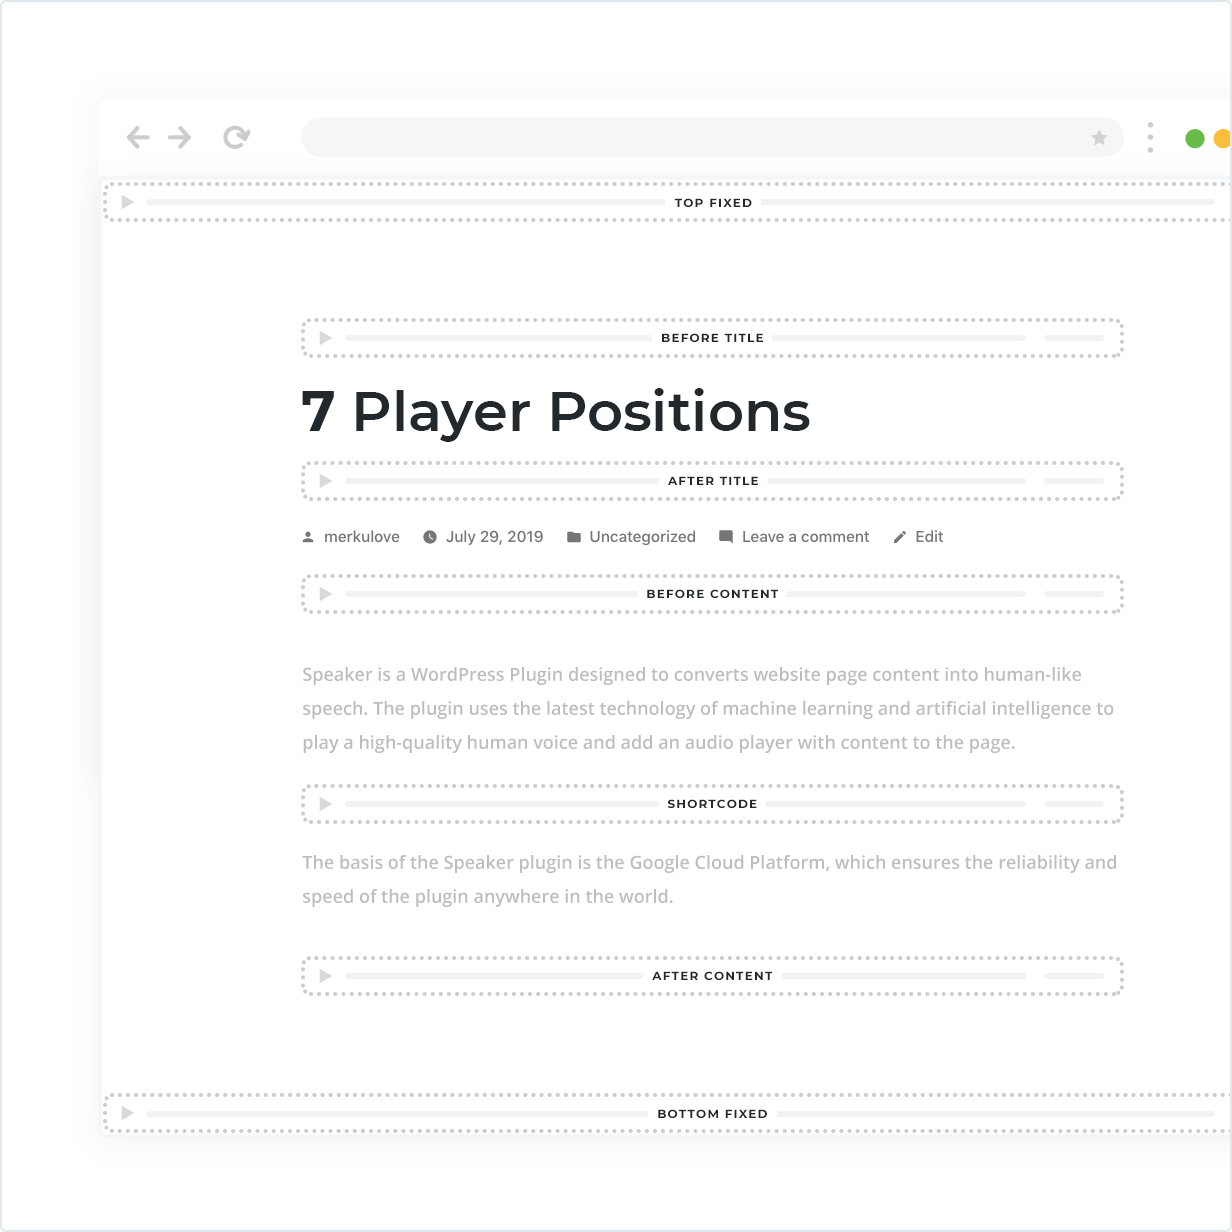 7 Player Positions